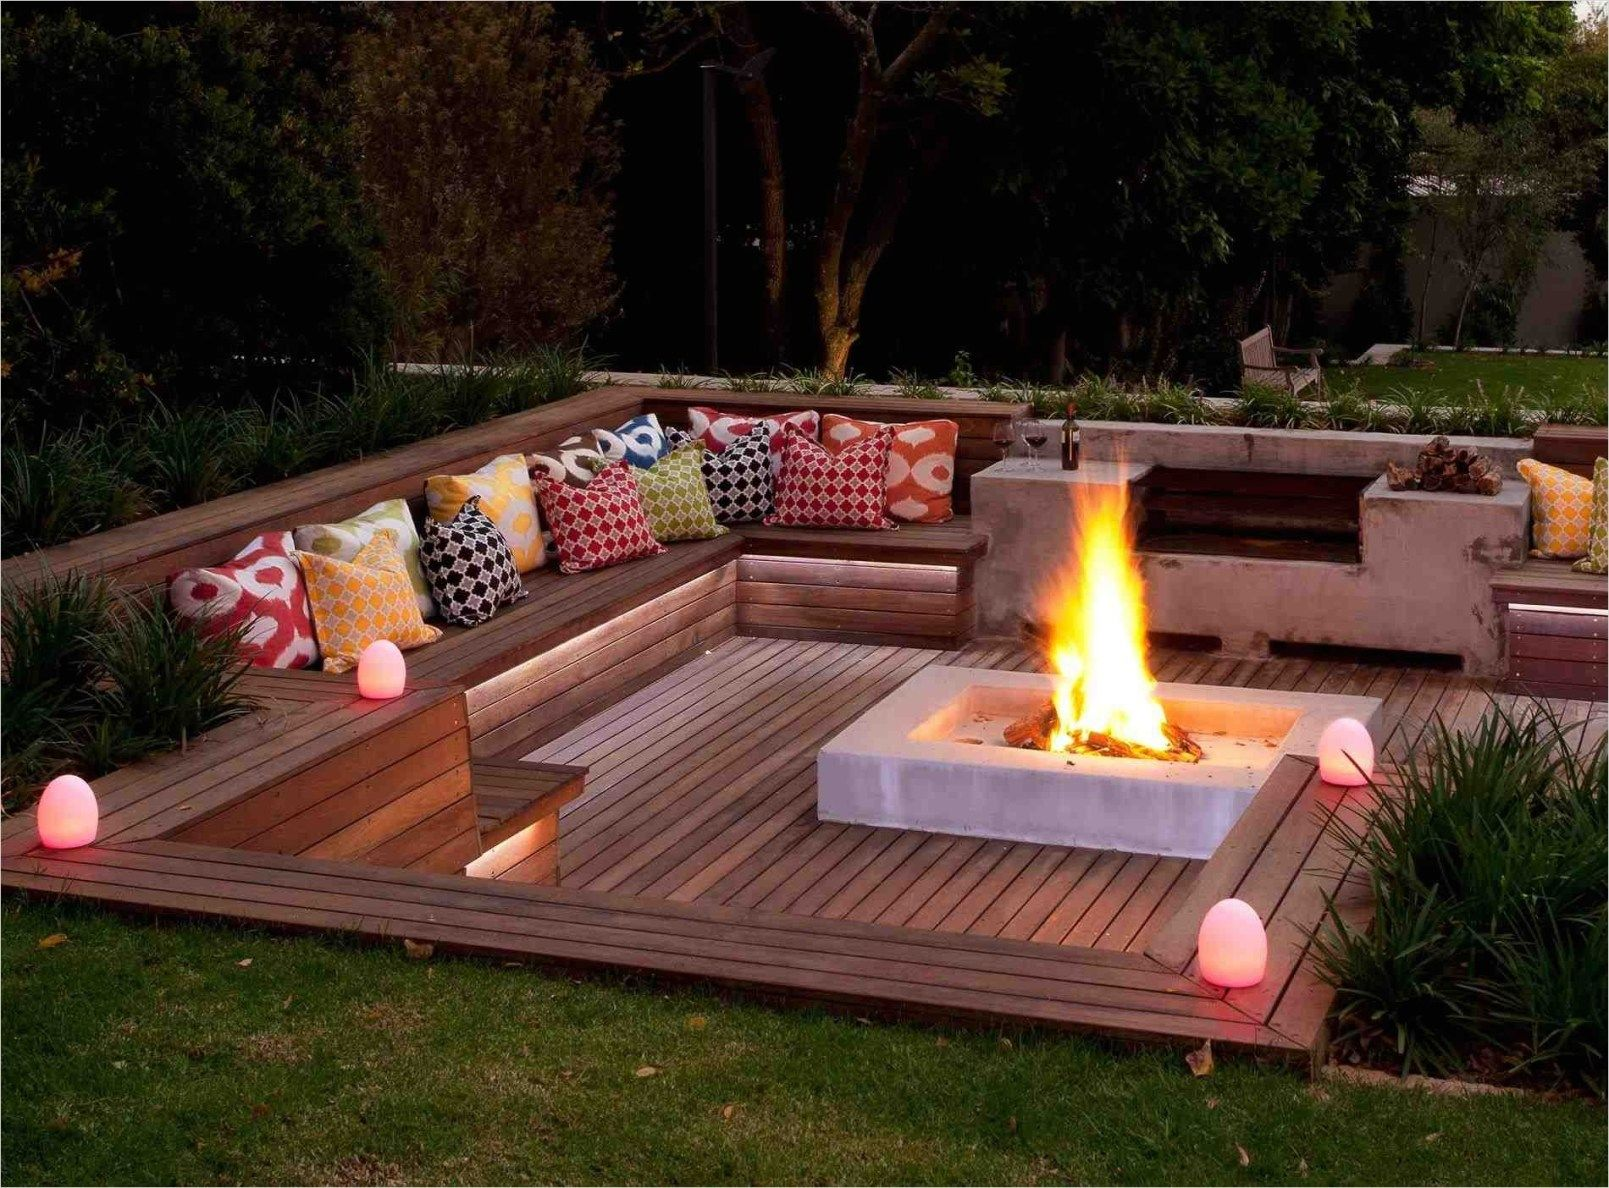 45 Perfect Backyard Bbq Landscaping Ideas 99 Outdoor Bbq Pit Ideas 5 Fire Pit Decor Fire Pit Backyard Backyard Fire